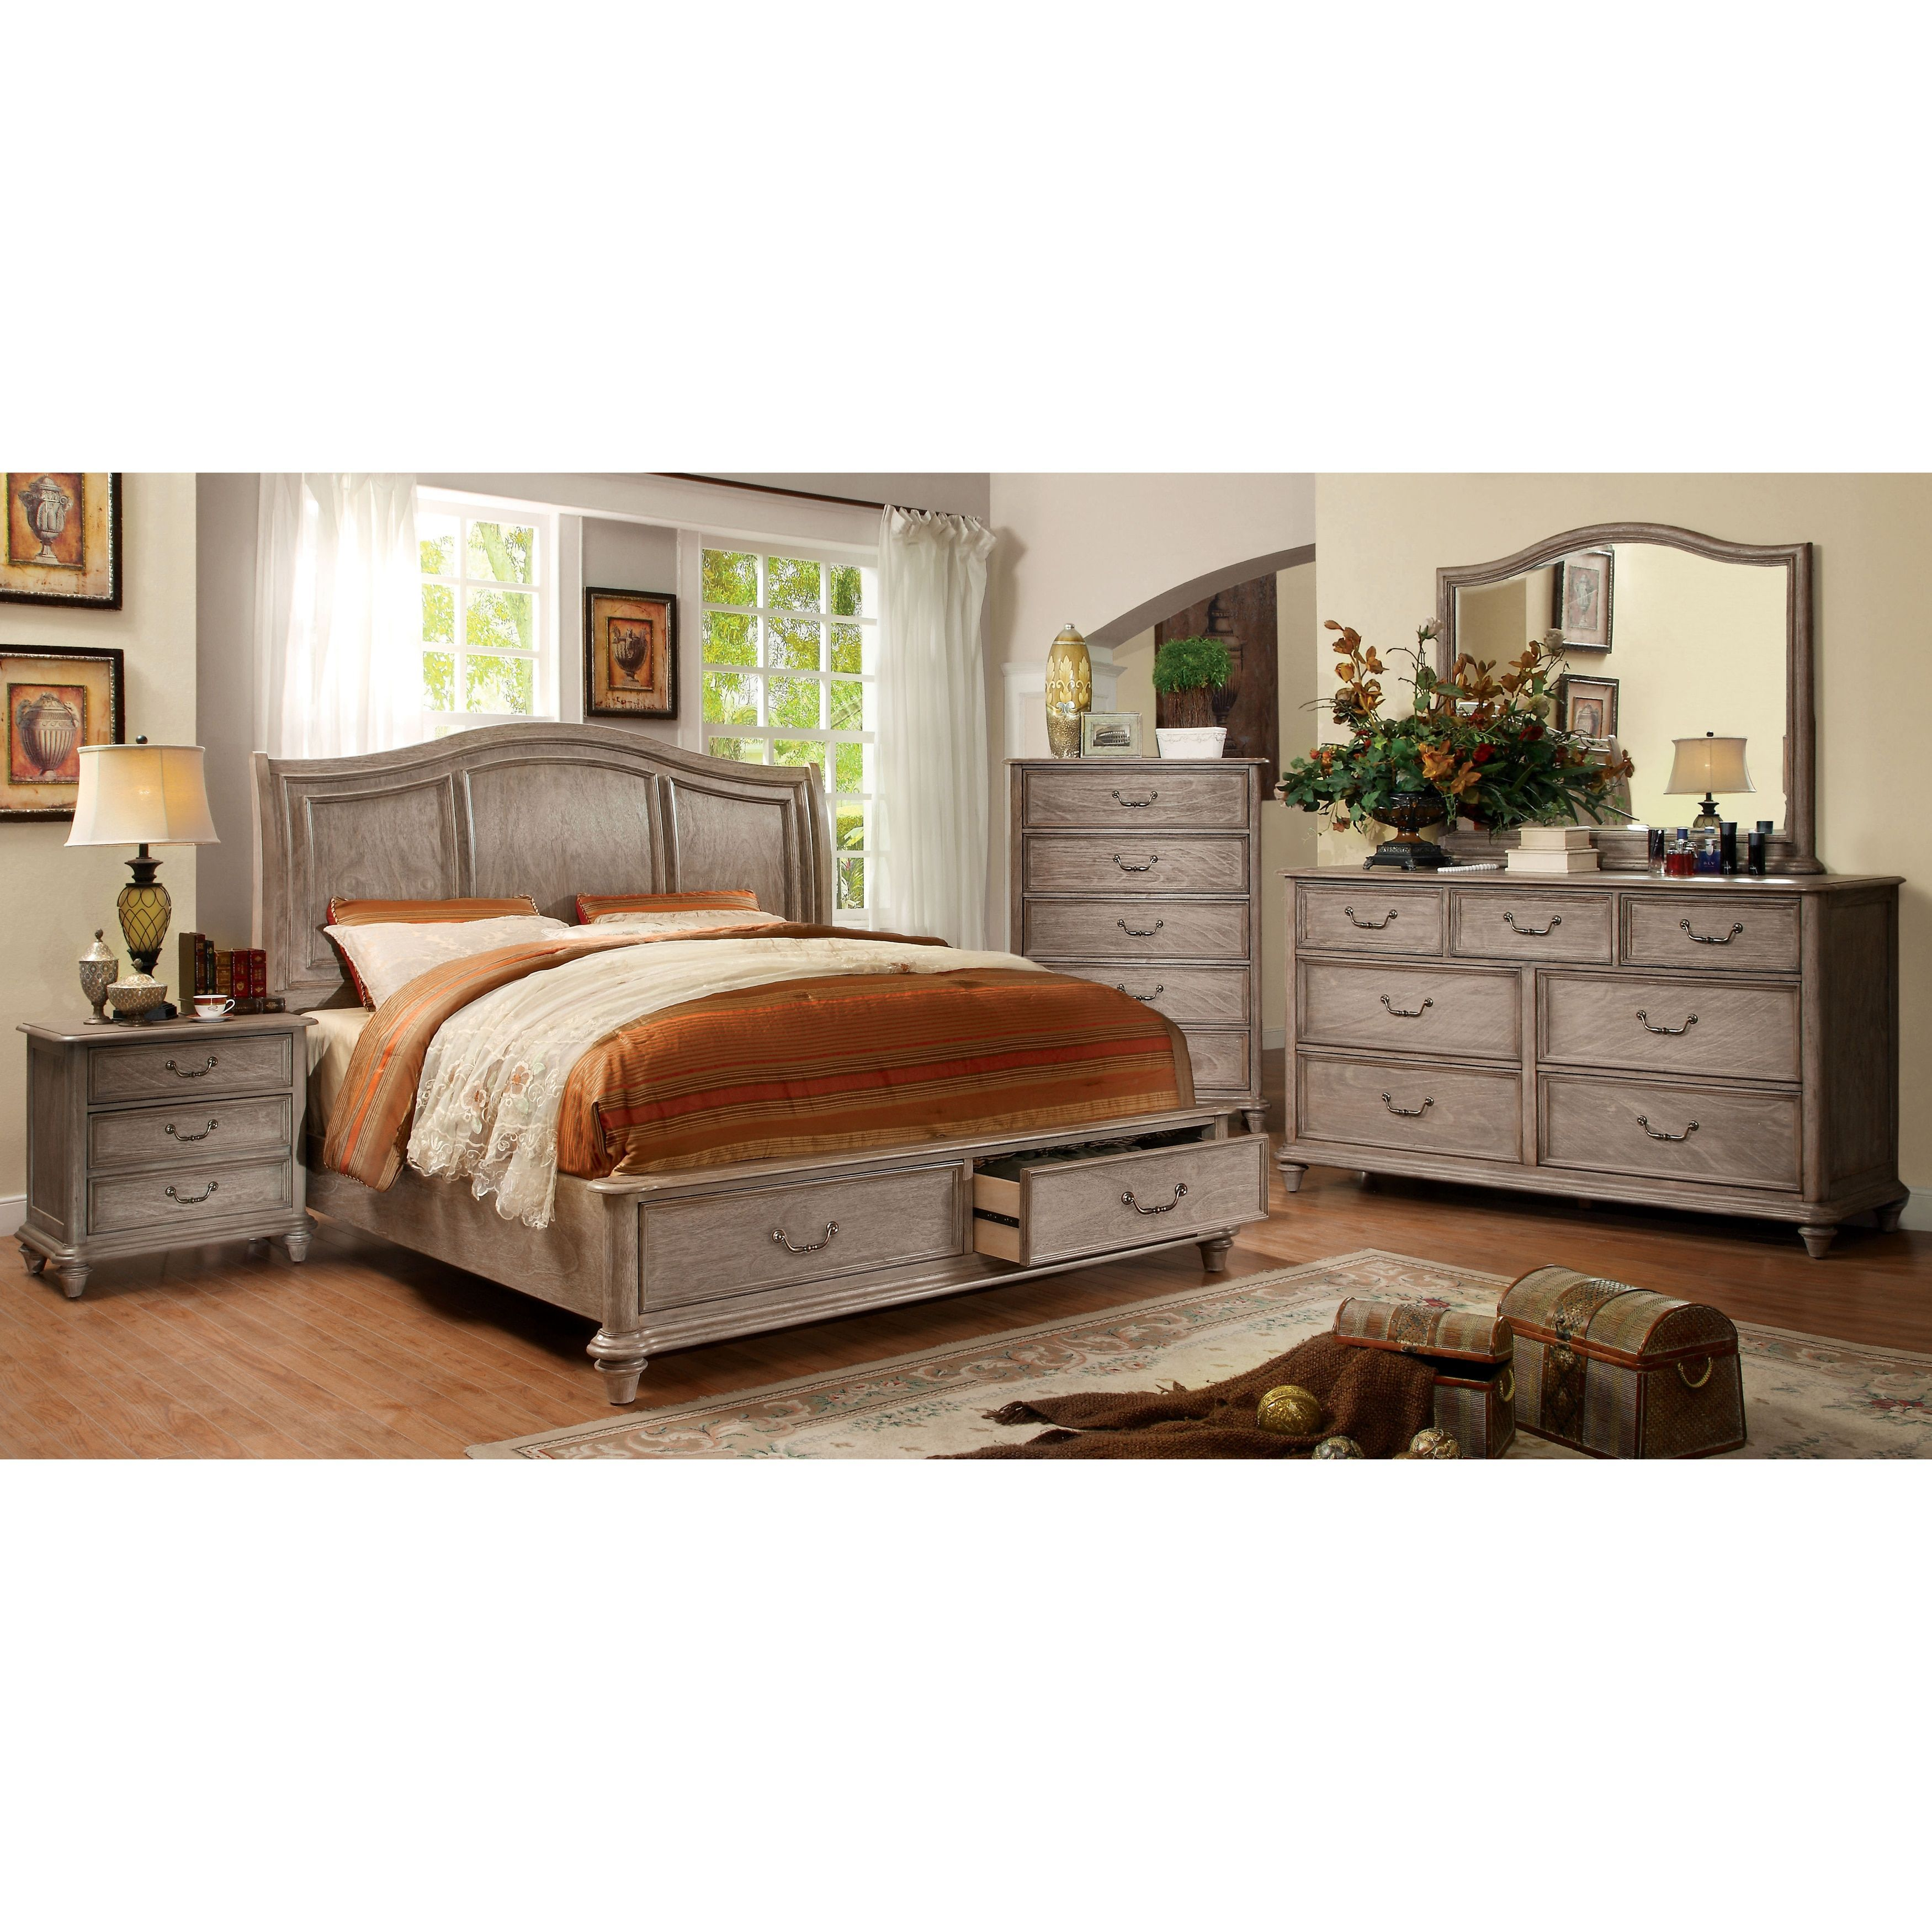 Furniture of America Minka III Rustic Grey 4-piece Bedroom Set (Cal ...